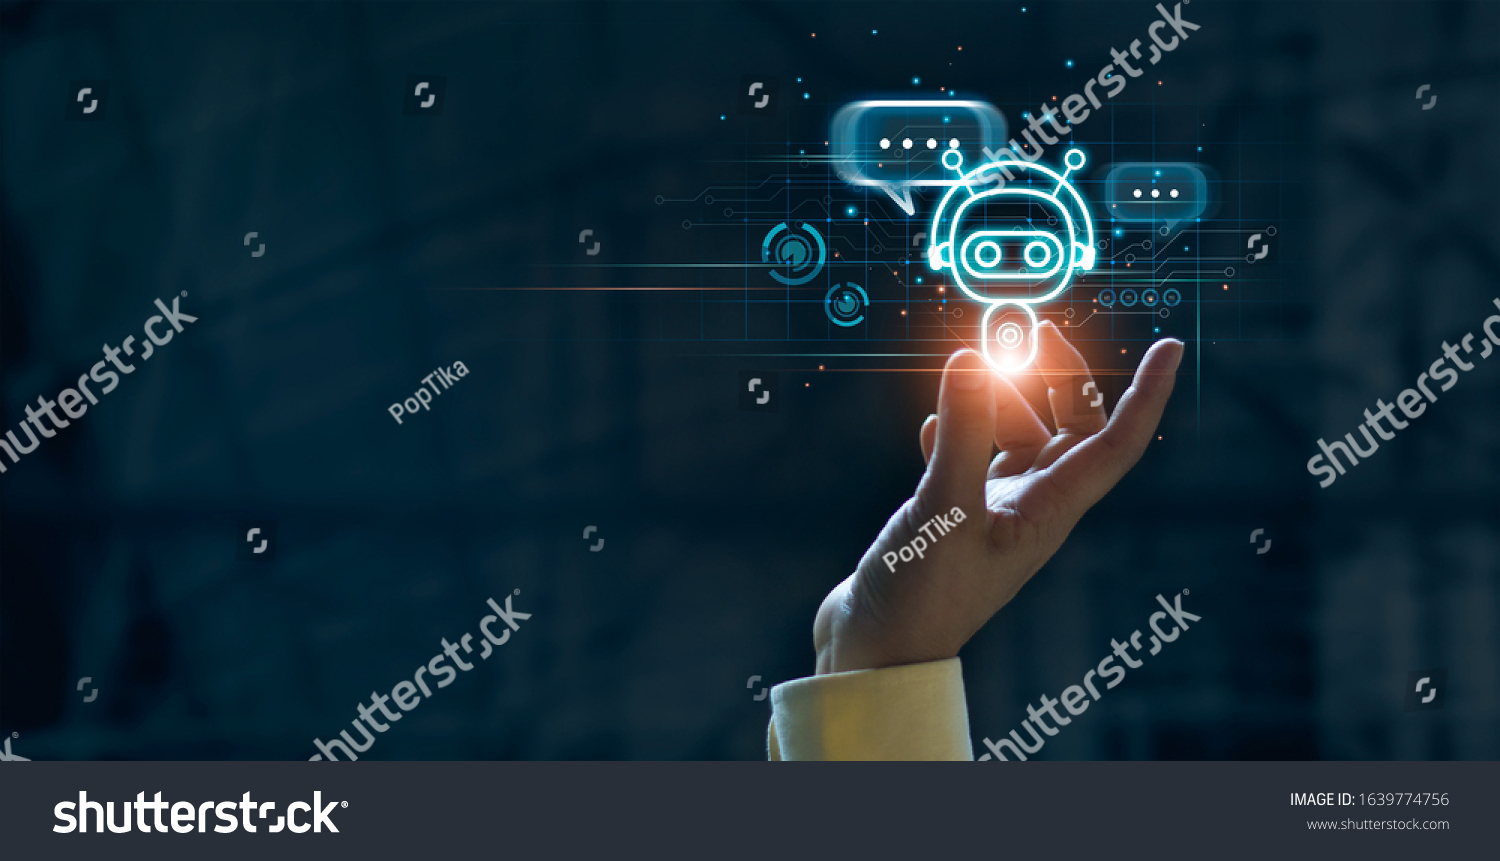 Hand touching digital chatbot for provide access to information and data in online network, robot application and global connection, AI, Artificial intelligence, innovation and technology. #1639774756